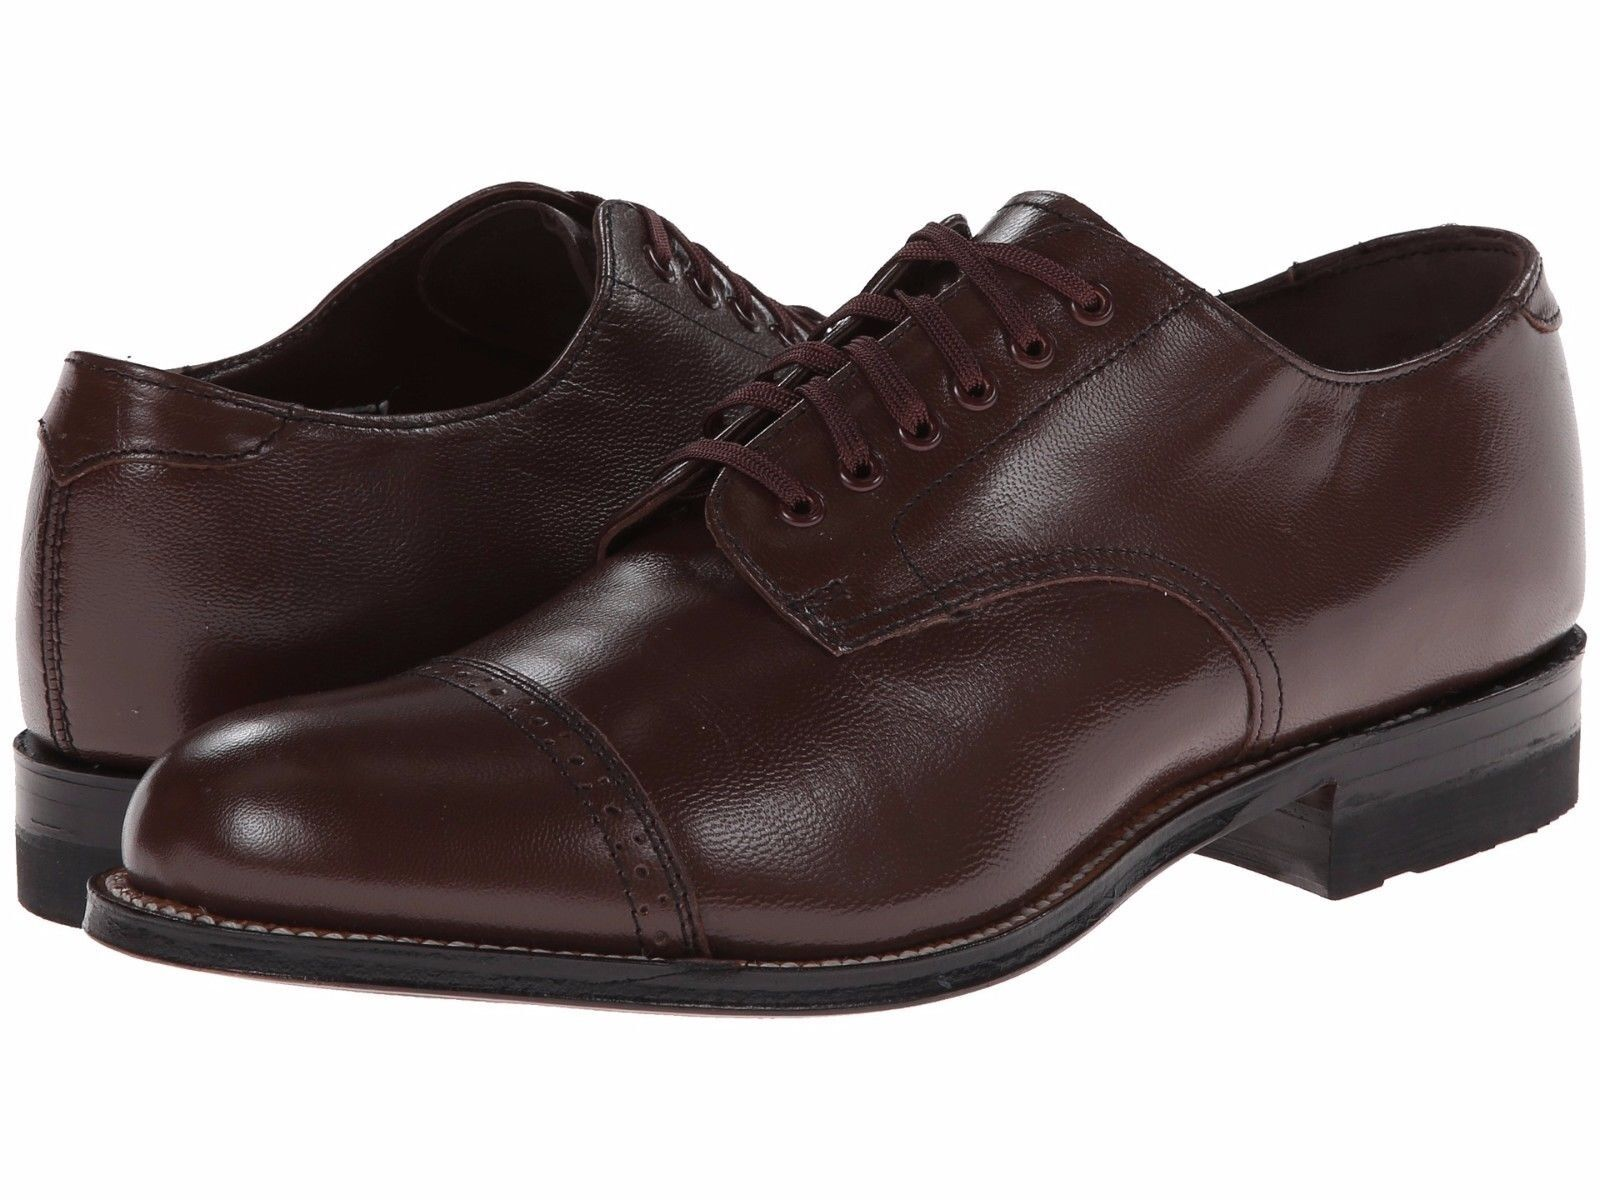 Stacy Adams Uomo Brown Madison Cap Toe Toe Toe Dress Formal Oxford Wide Medium Shoe 00fe78